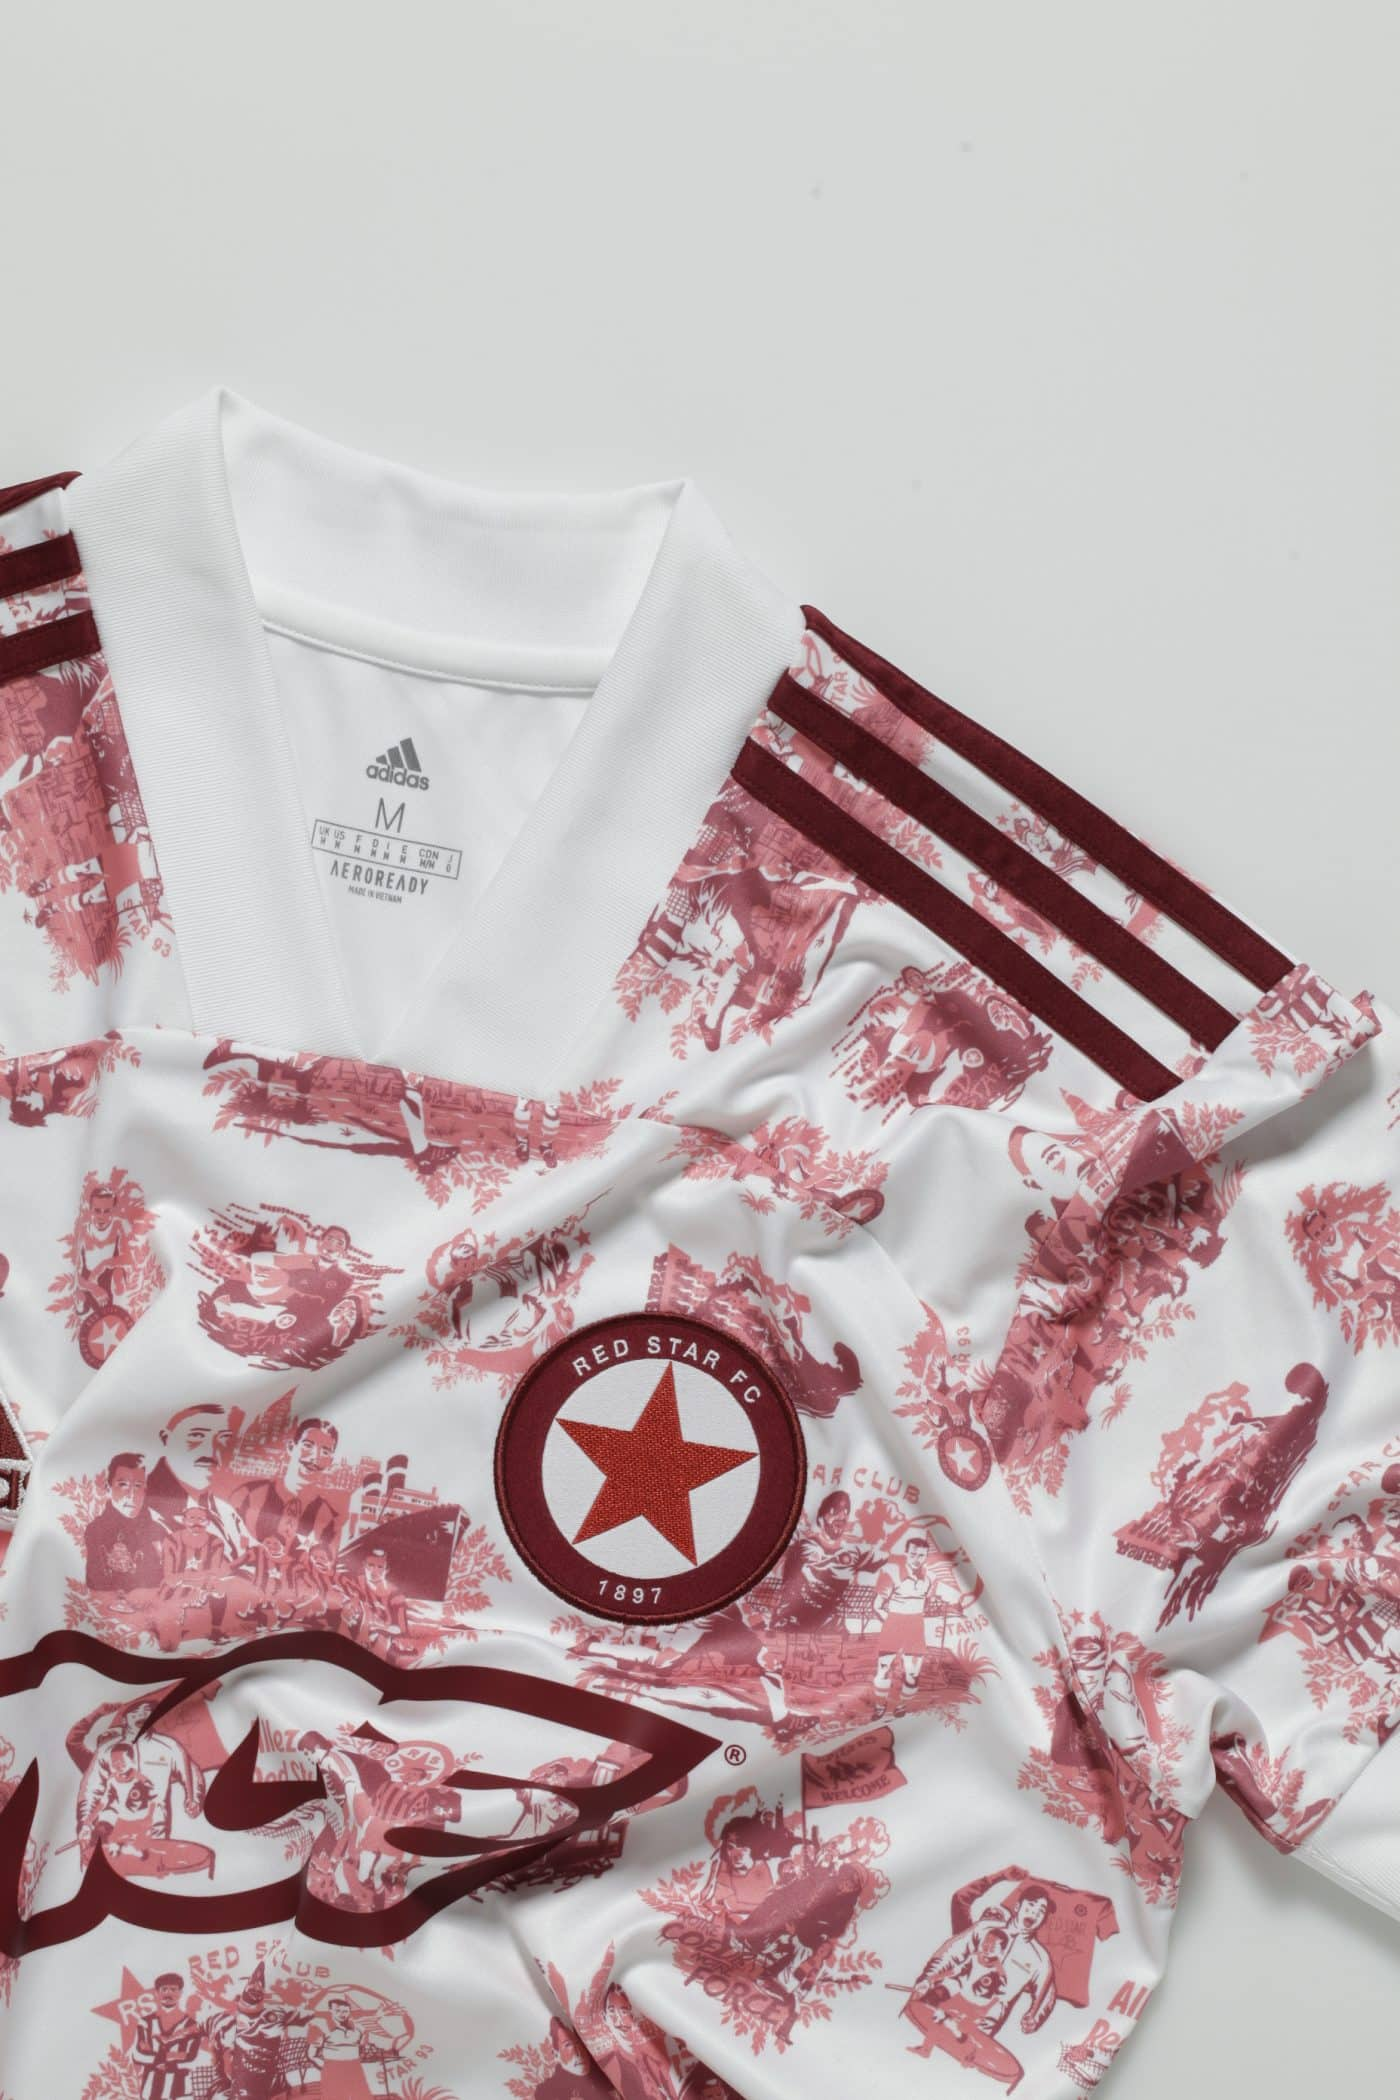 maillot-exterieur-red-star-2020-2021-adidas-2